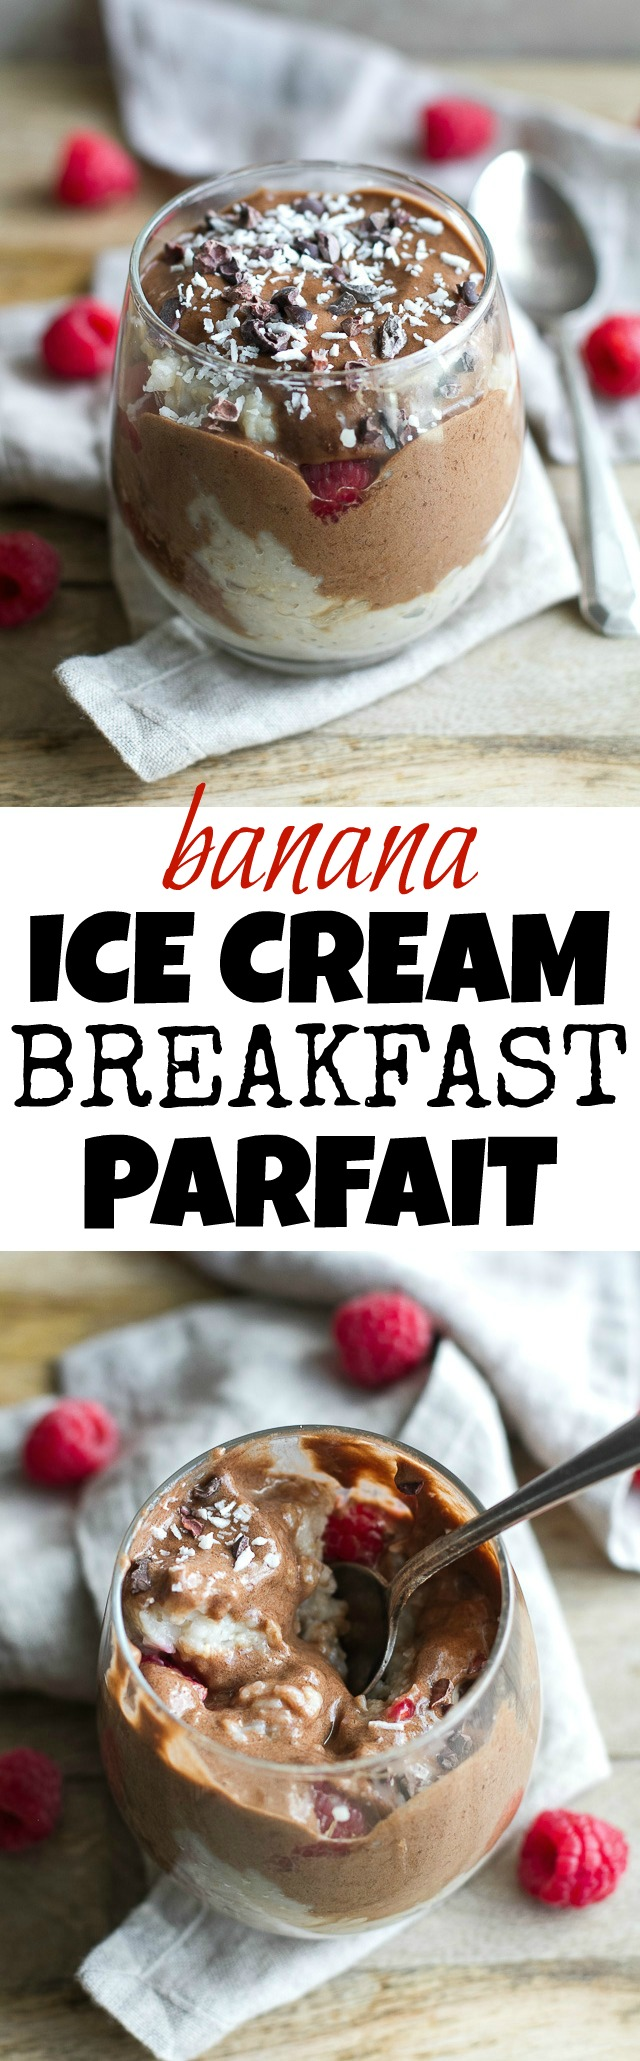 Banana Ice Cream Breakfast Parfait - enjoy dessert for breakfast with this healthy and customizable parfait made with banana ice cream and oatmeal | runningwithspoons.com #vegan #glutenfree #recipe